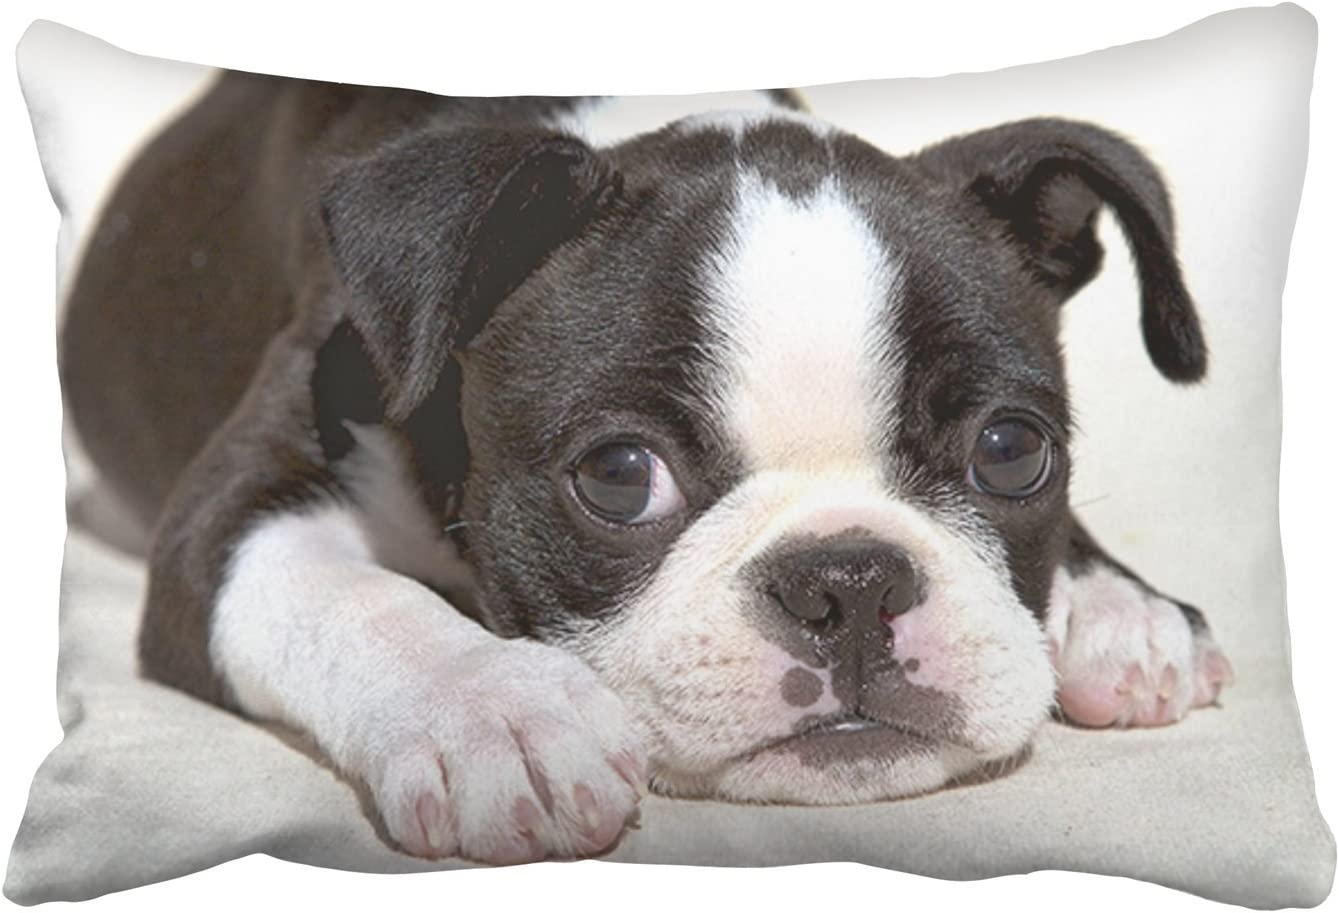 Amazon Com Jbralid Cute Tummy Boston Terrier Puppy Black And White Pillow Cover Cotton Linen Indoor Decor Throw Pillow Case 16x24 In Home Kitchen